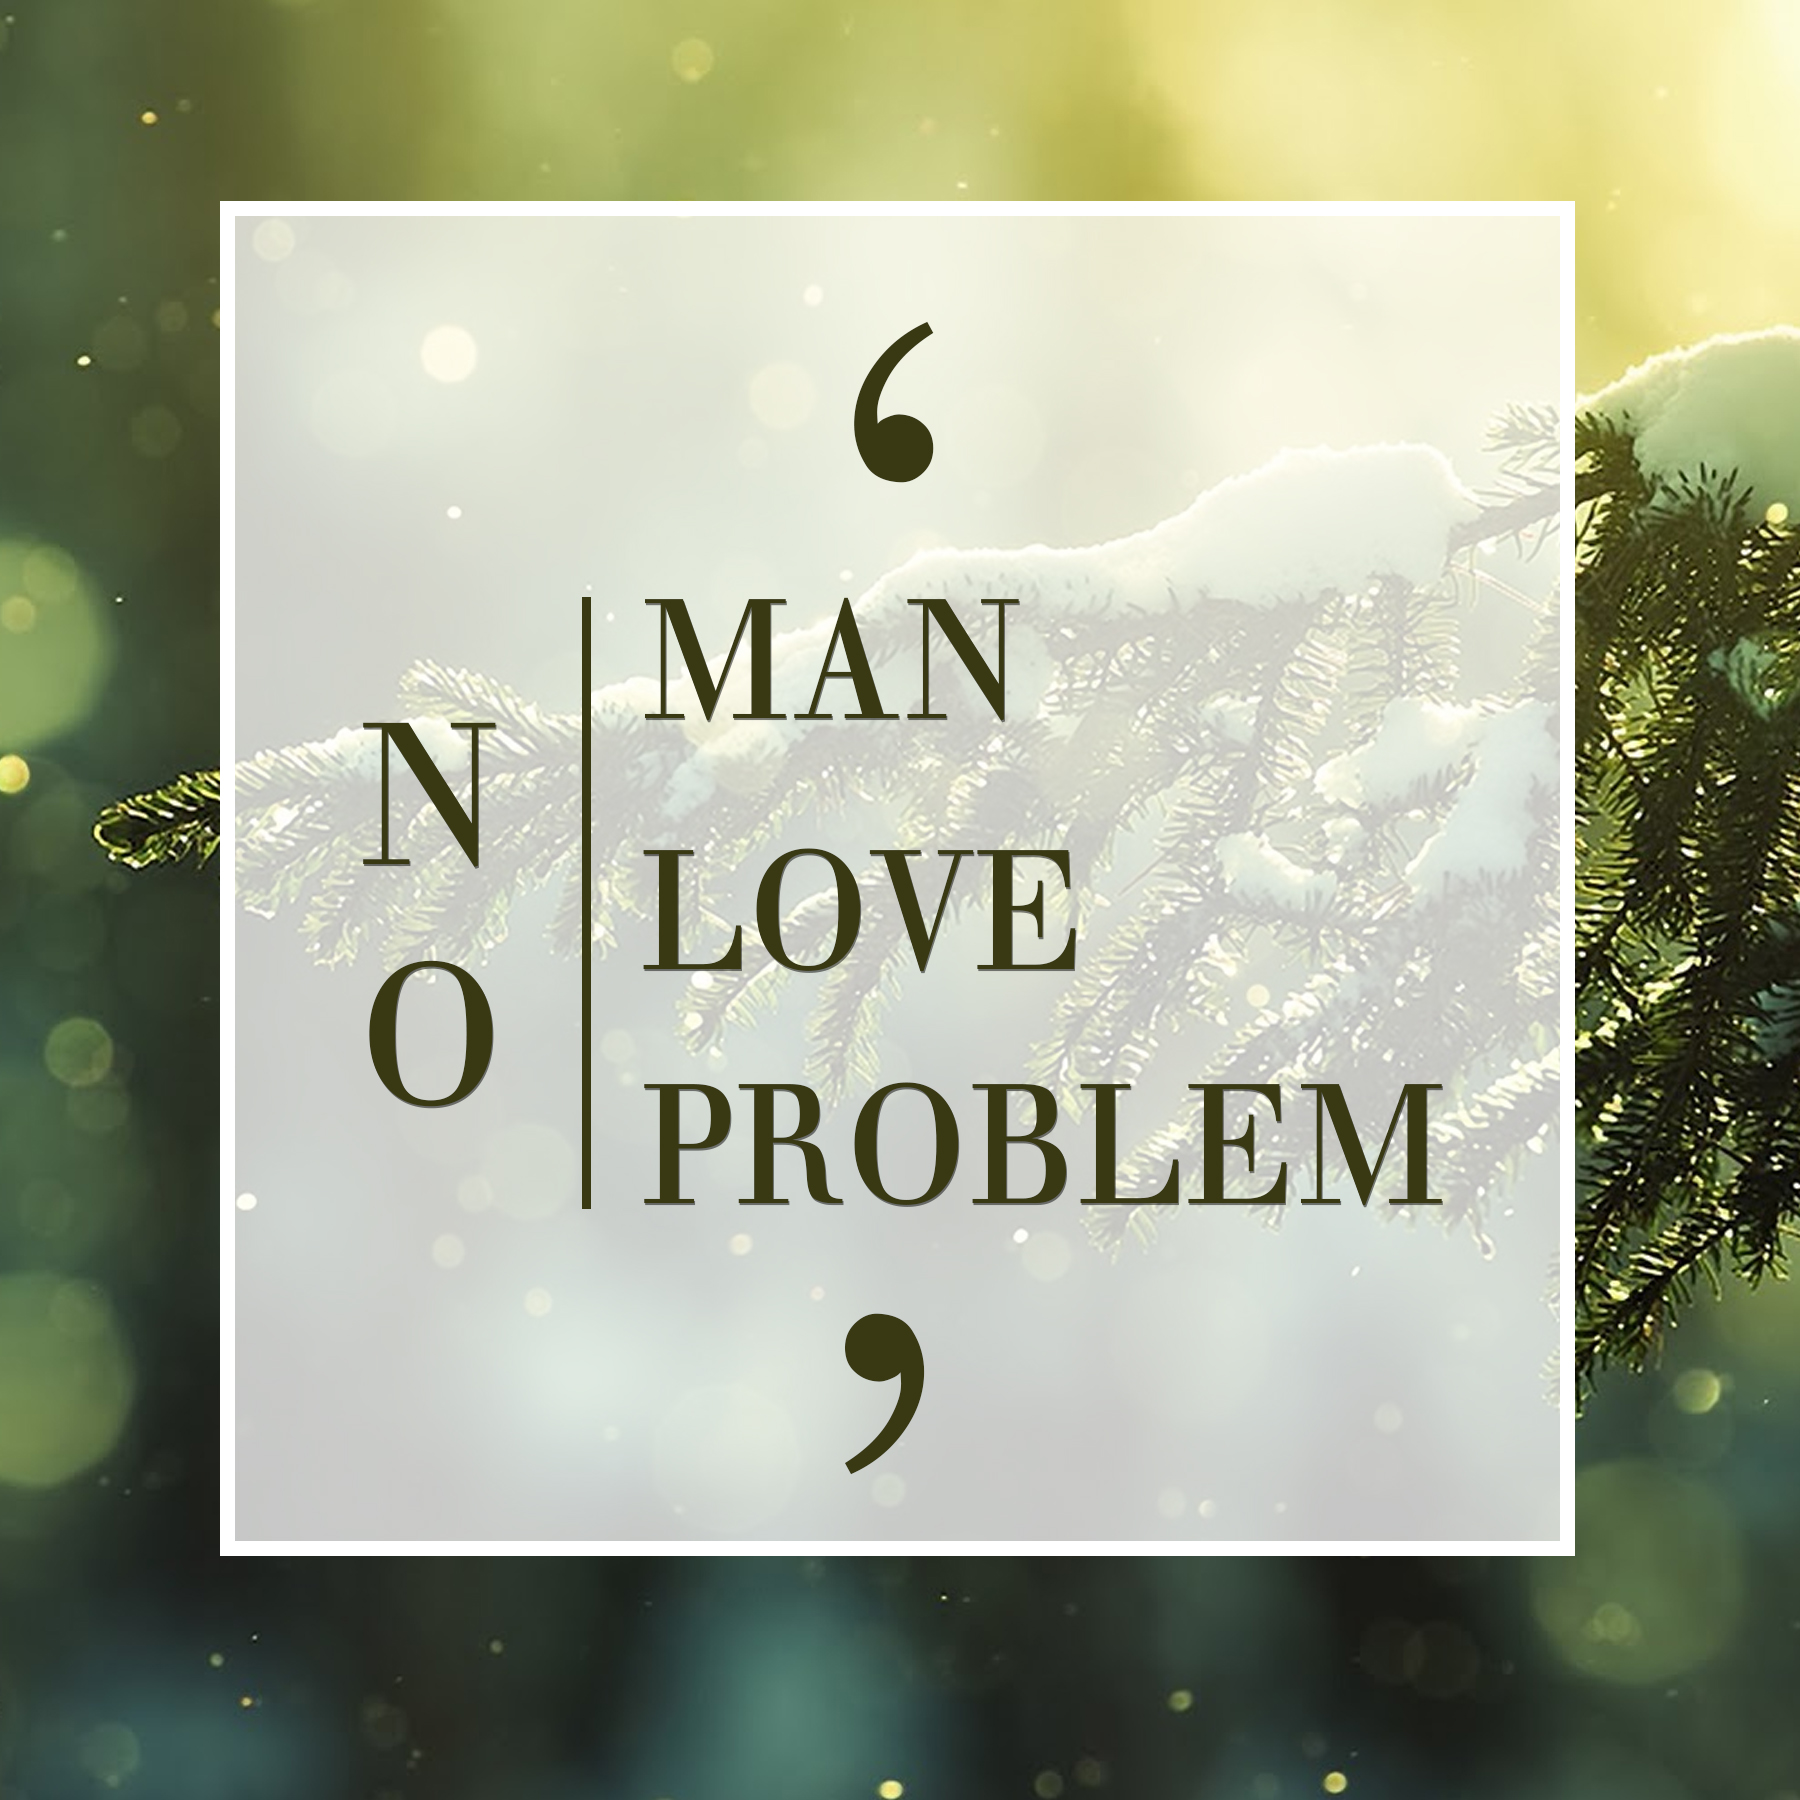 NO MAN - NO LOVE - NO PROBLEM